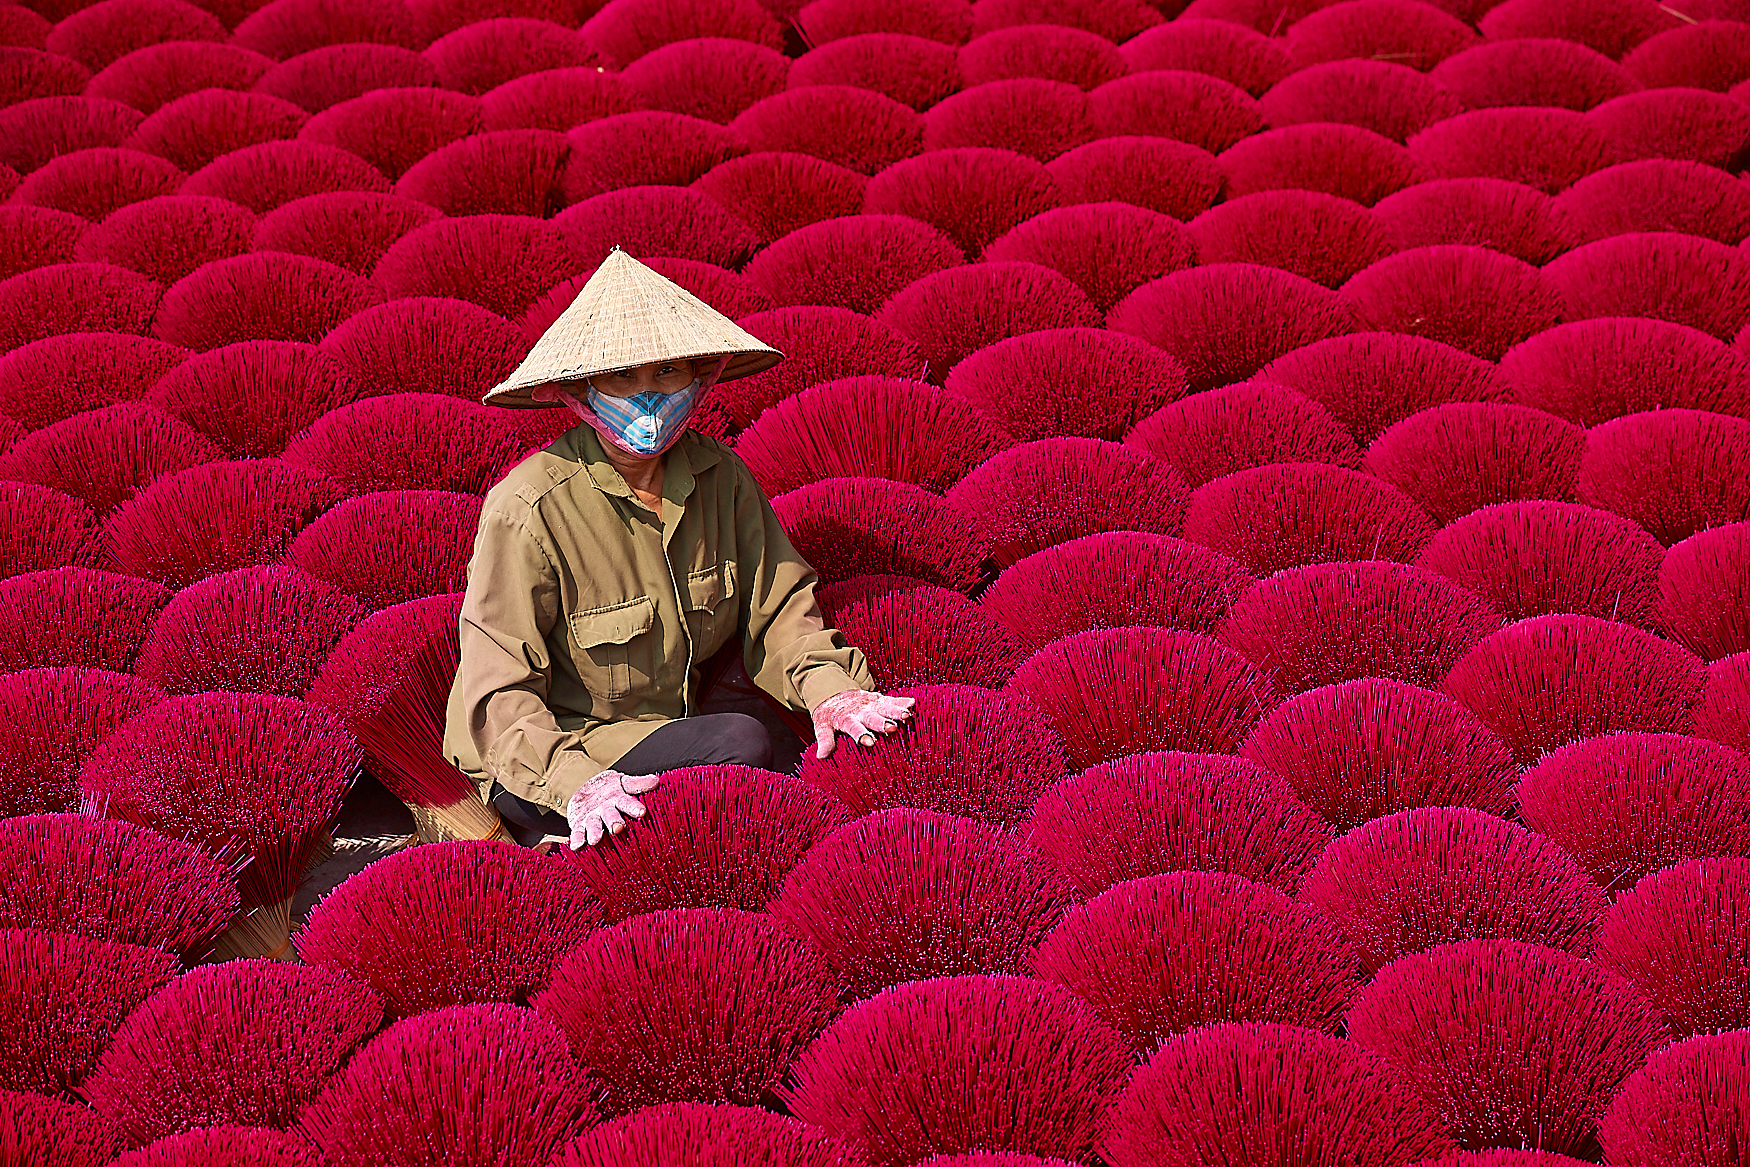 There are few sights more beautiful than a field of incense sticks